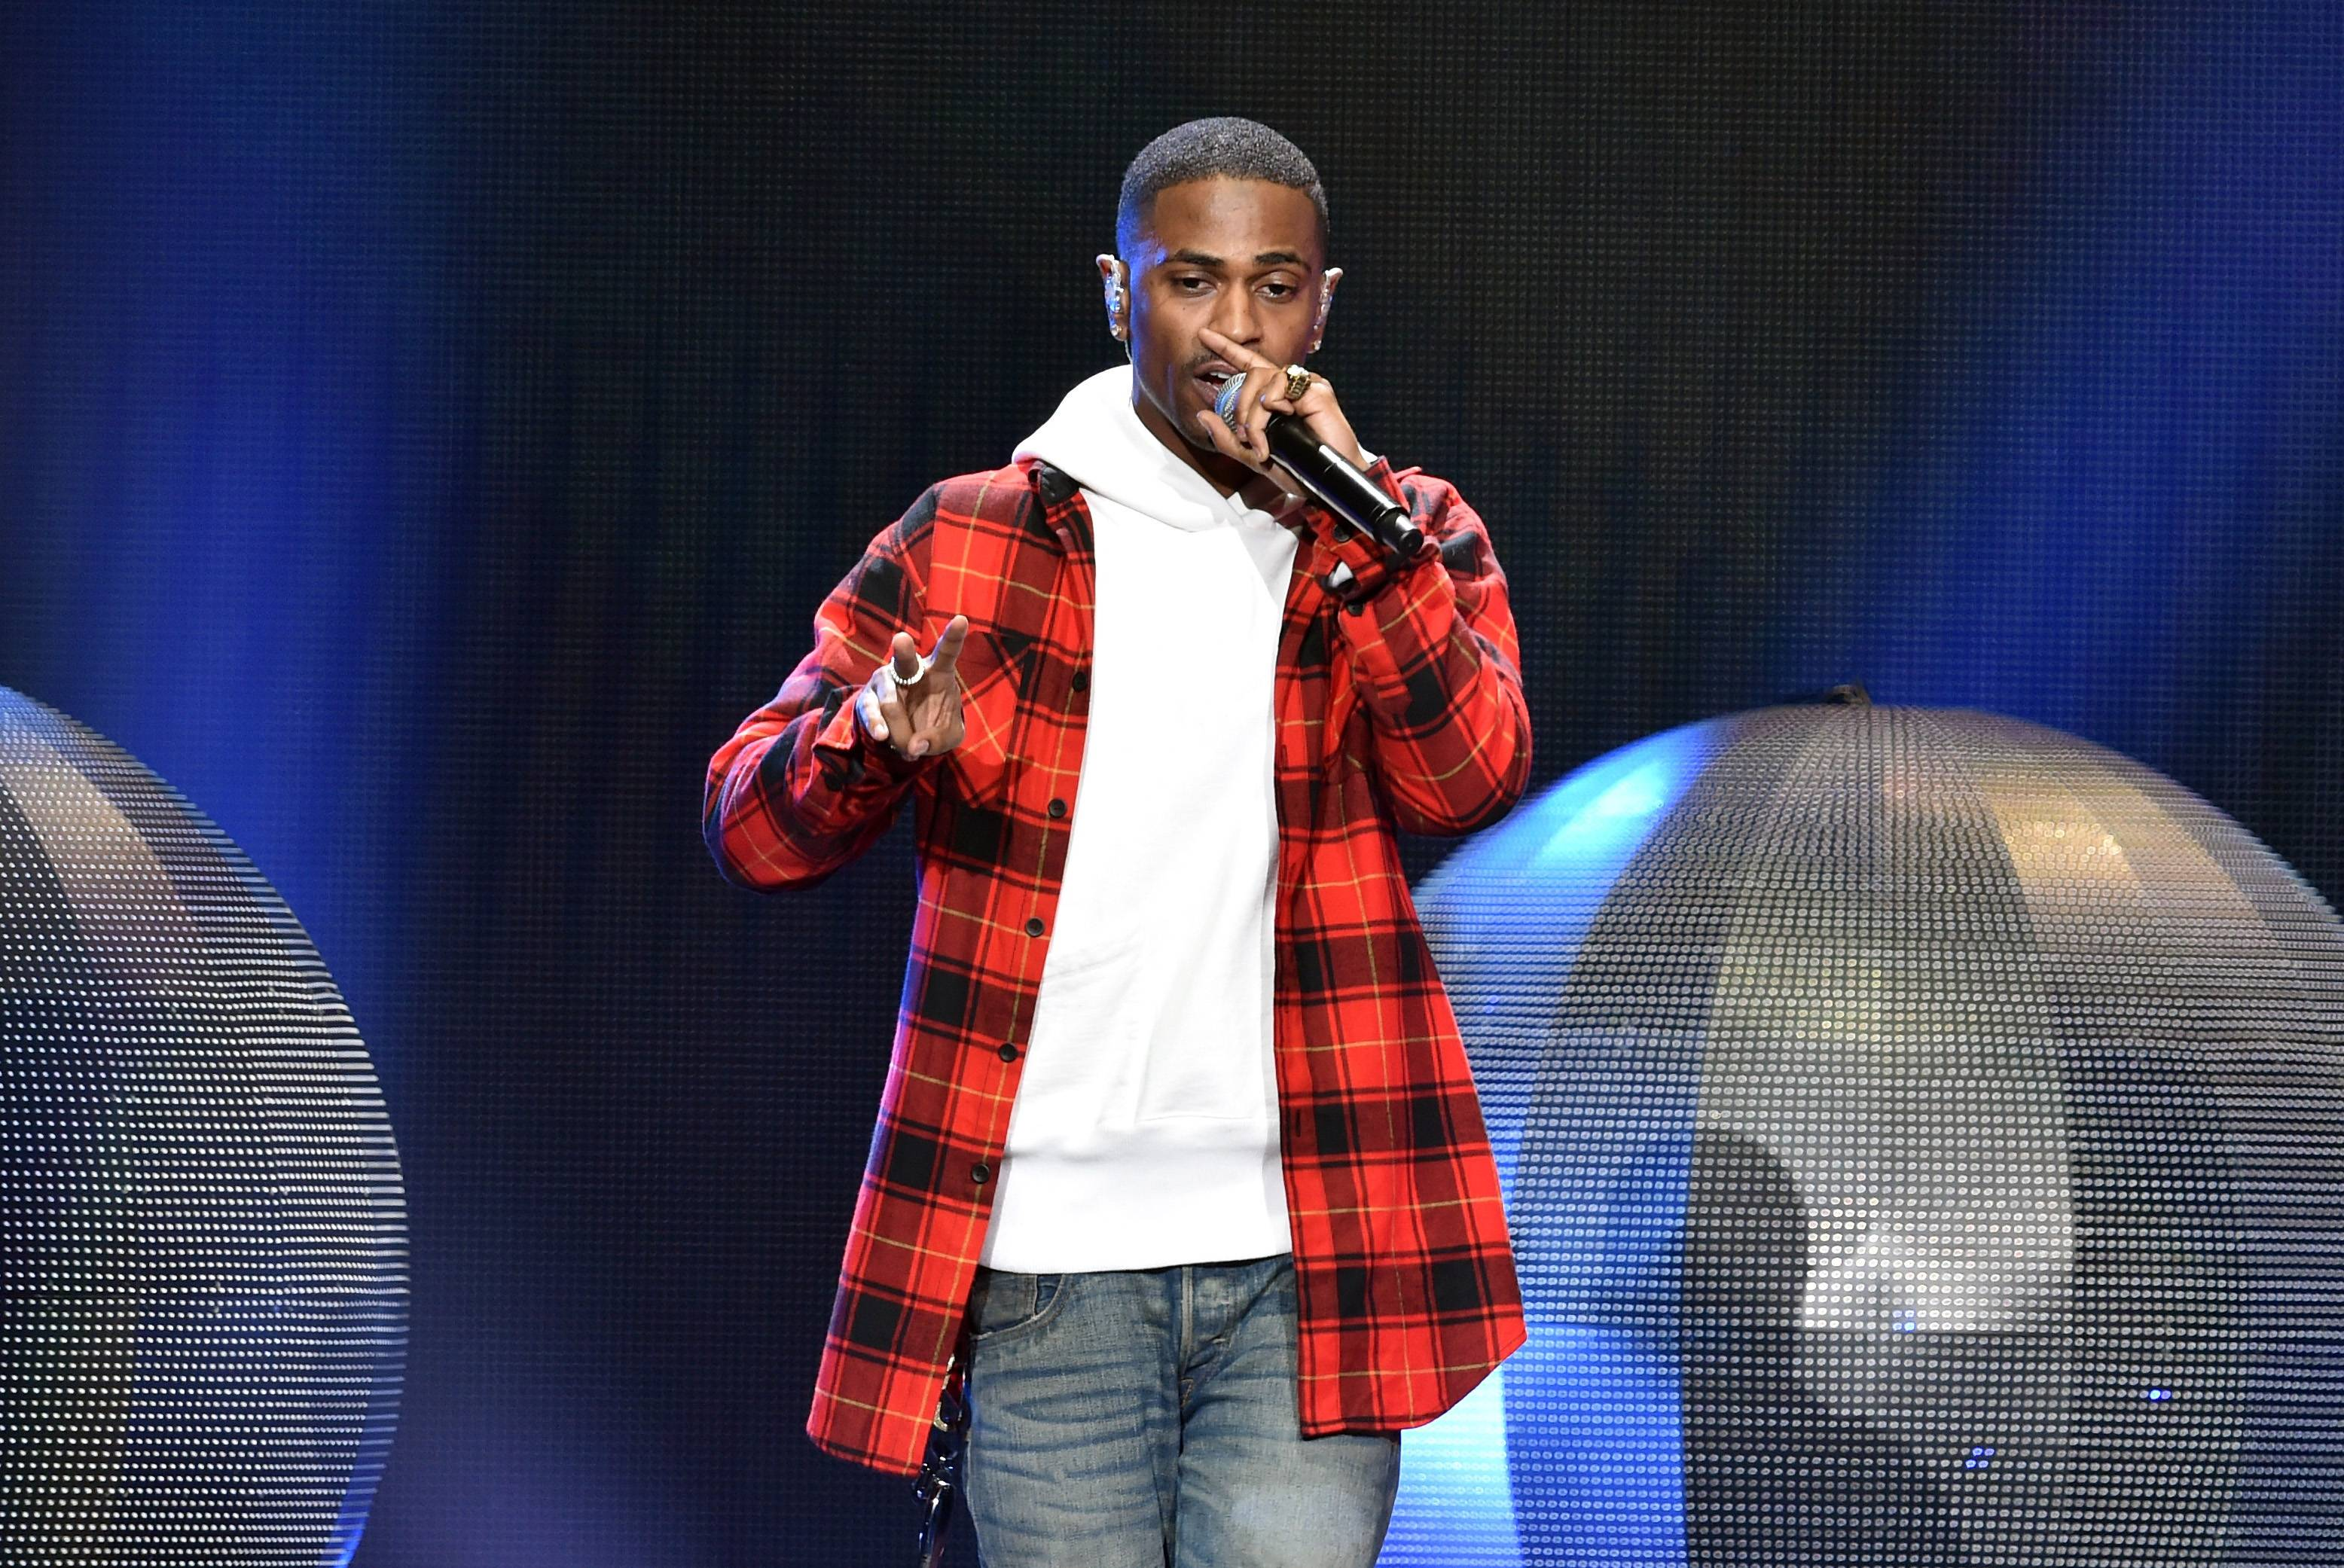 """Big Sean - Big Seanis one of those rare artists who can say he not only met, but signed with one of his favorite rappers. Recounting the impropmtu audition he had with Kanye at a Detroit radio station, Sean explained, """"I tapped him on the shoulder and was like, ?I?m an aspiring MC. I do this show every Friday. Can I rap for you?? He was like, ?No. I gotta go.? I?m like, ?Man, please ? you?re my hero...?? Sixteen seconds turned into a 10 minute showcase and Sean and Ye have been rolling like batman and Robin ever since.(Photo: Kevin Winter/Getty Images for iHeartMedia)"""